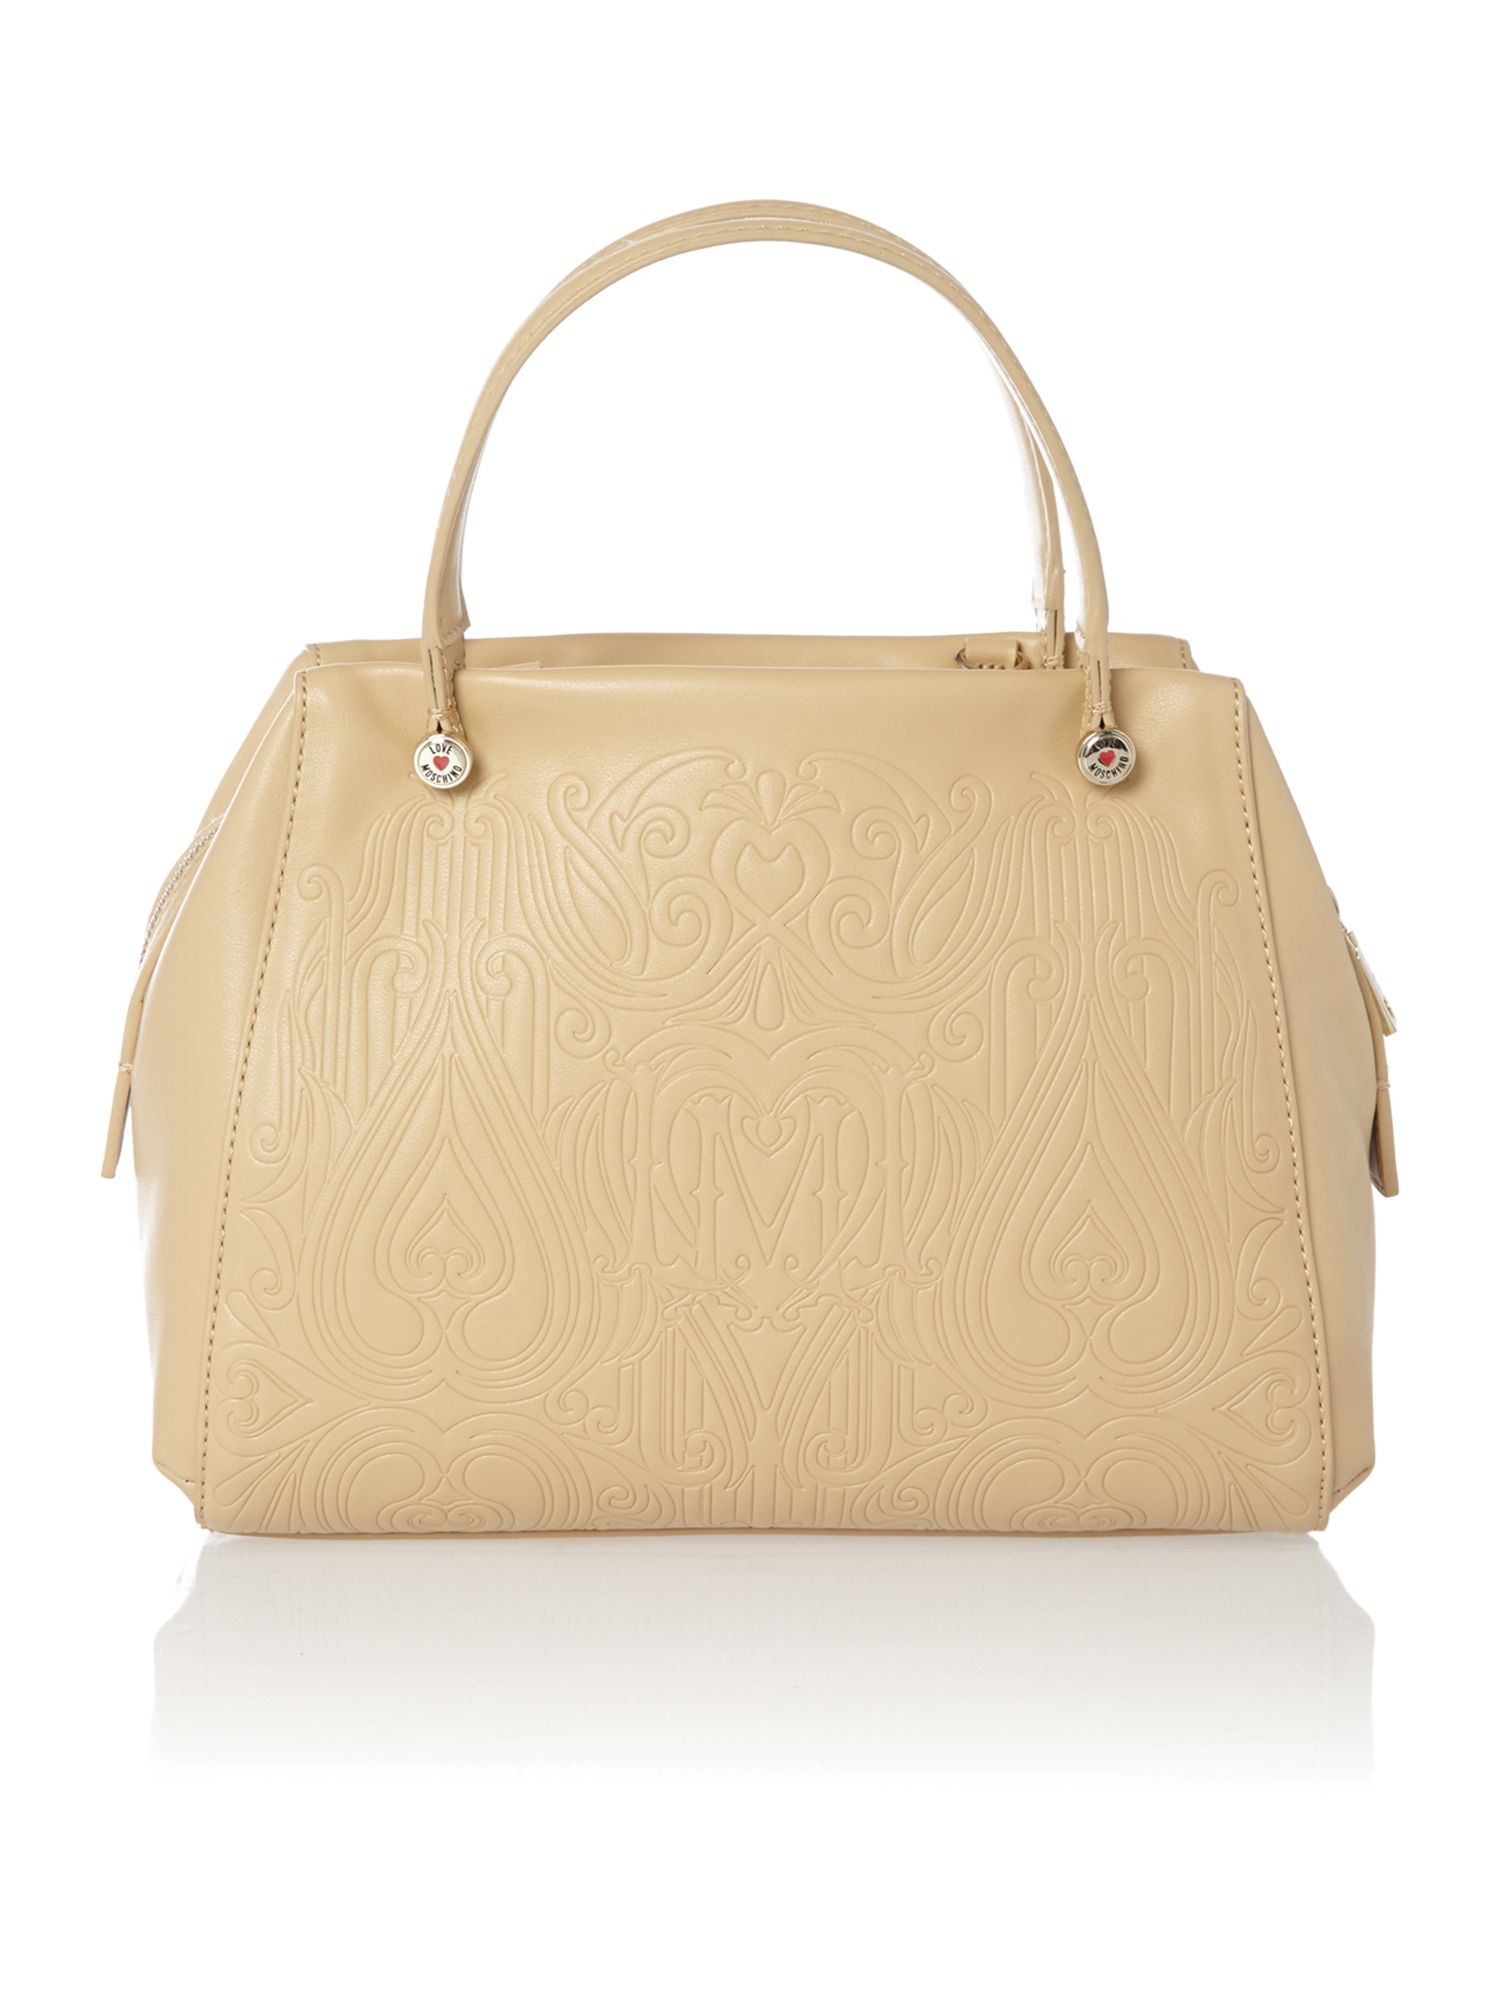 Beige gothic embossed cross body tote bag